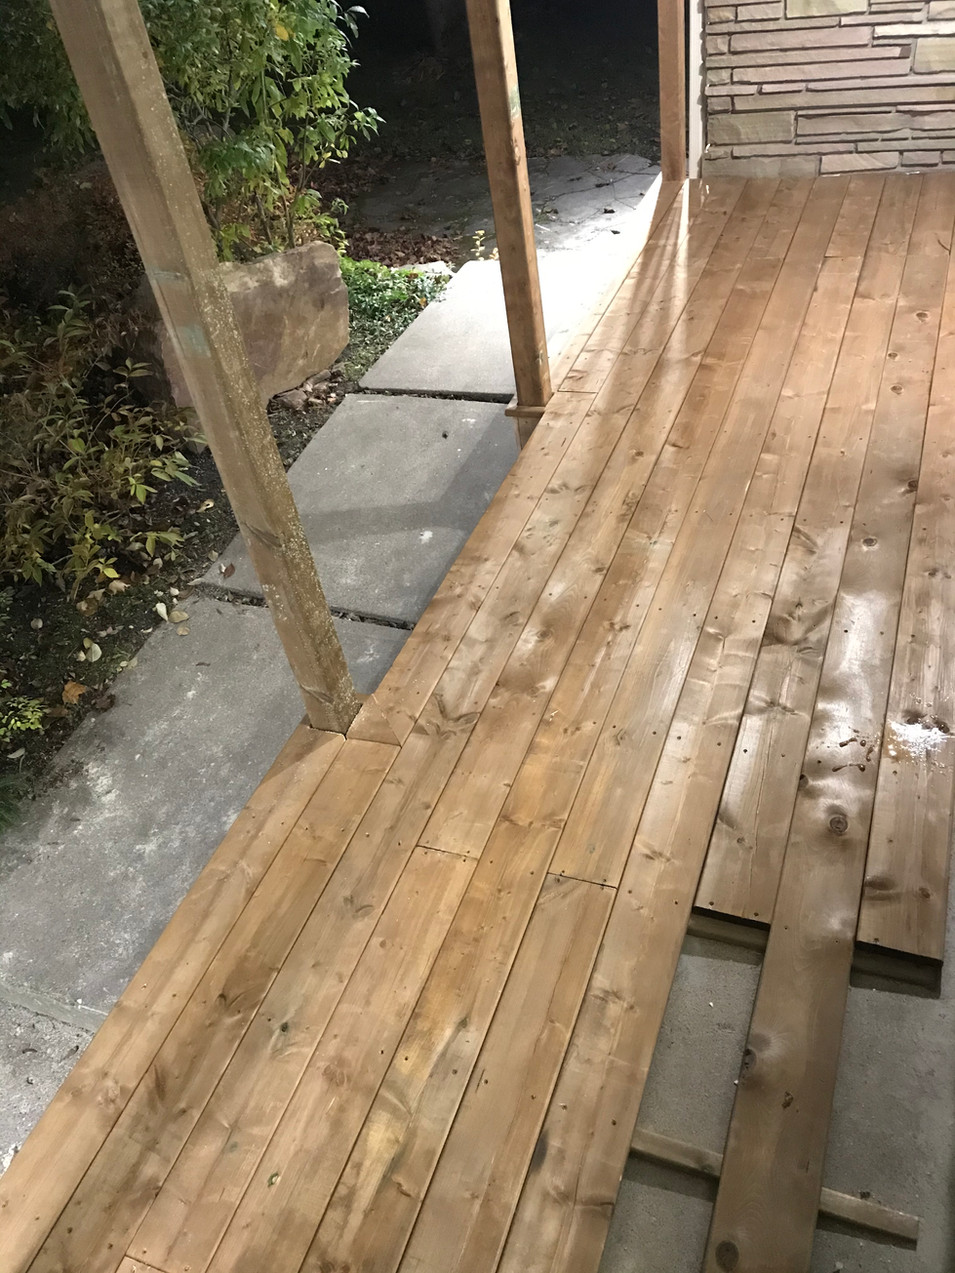 Installing the decking!